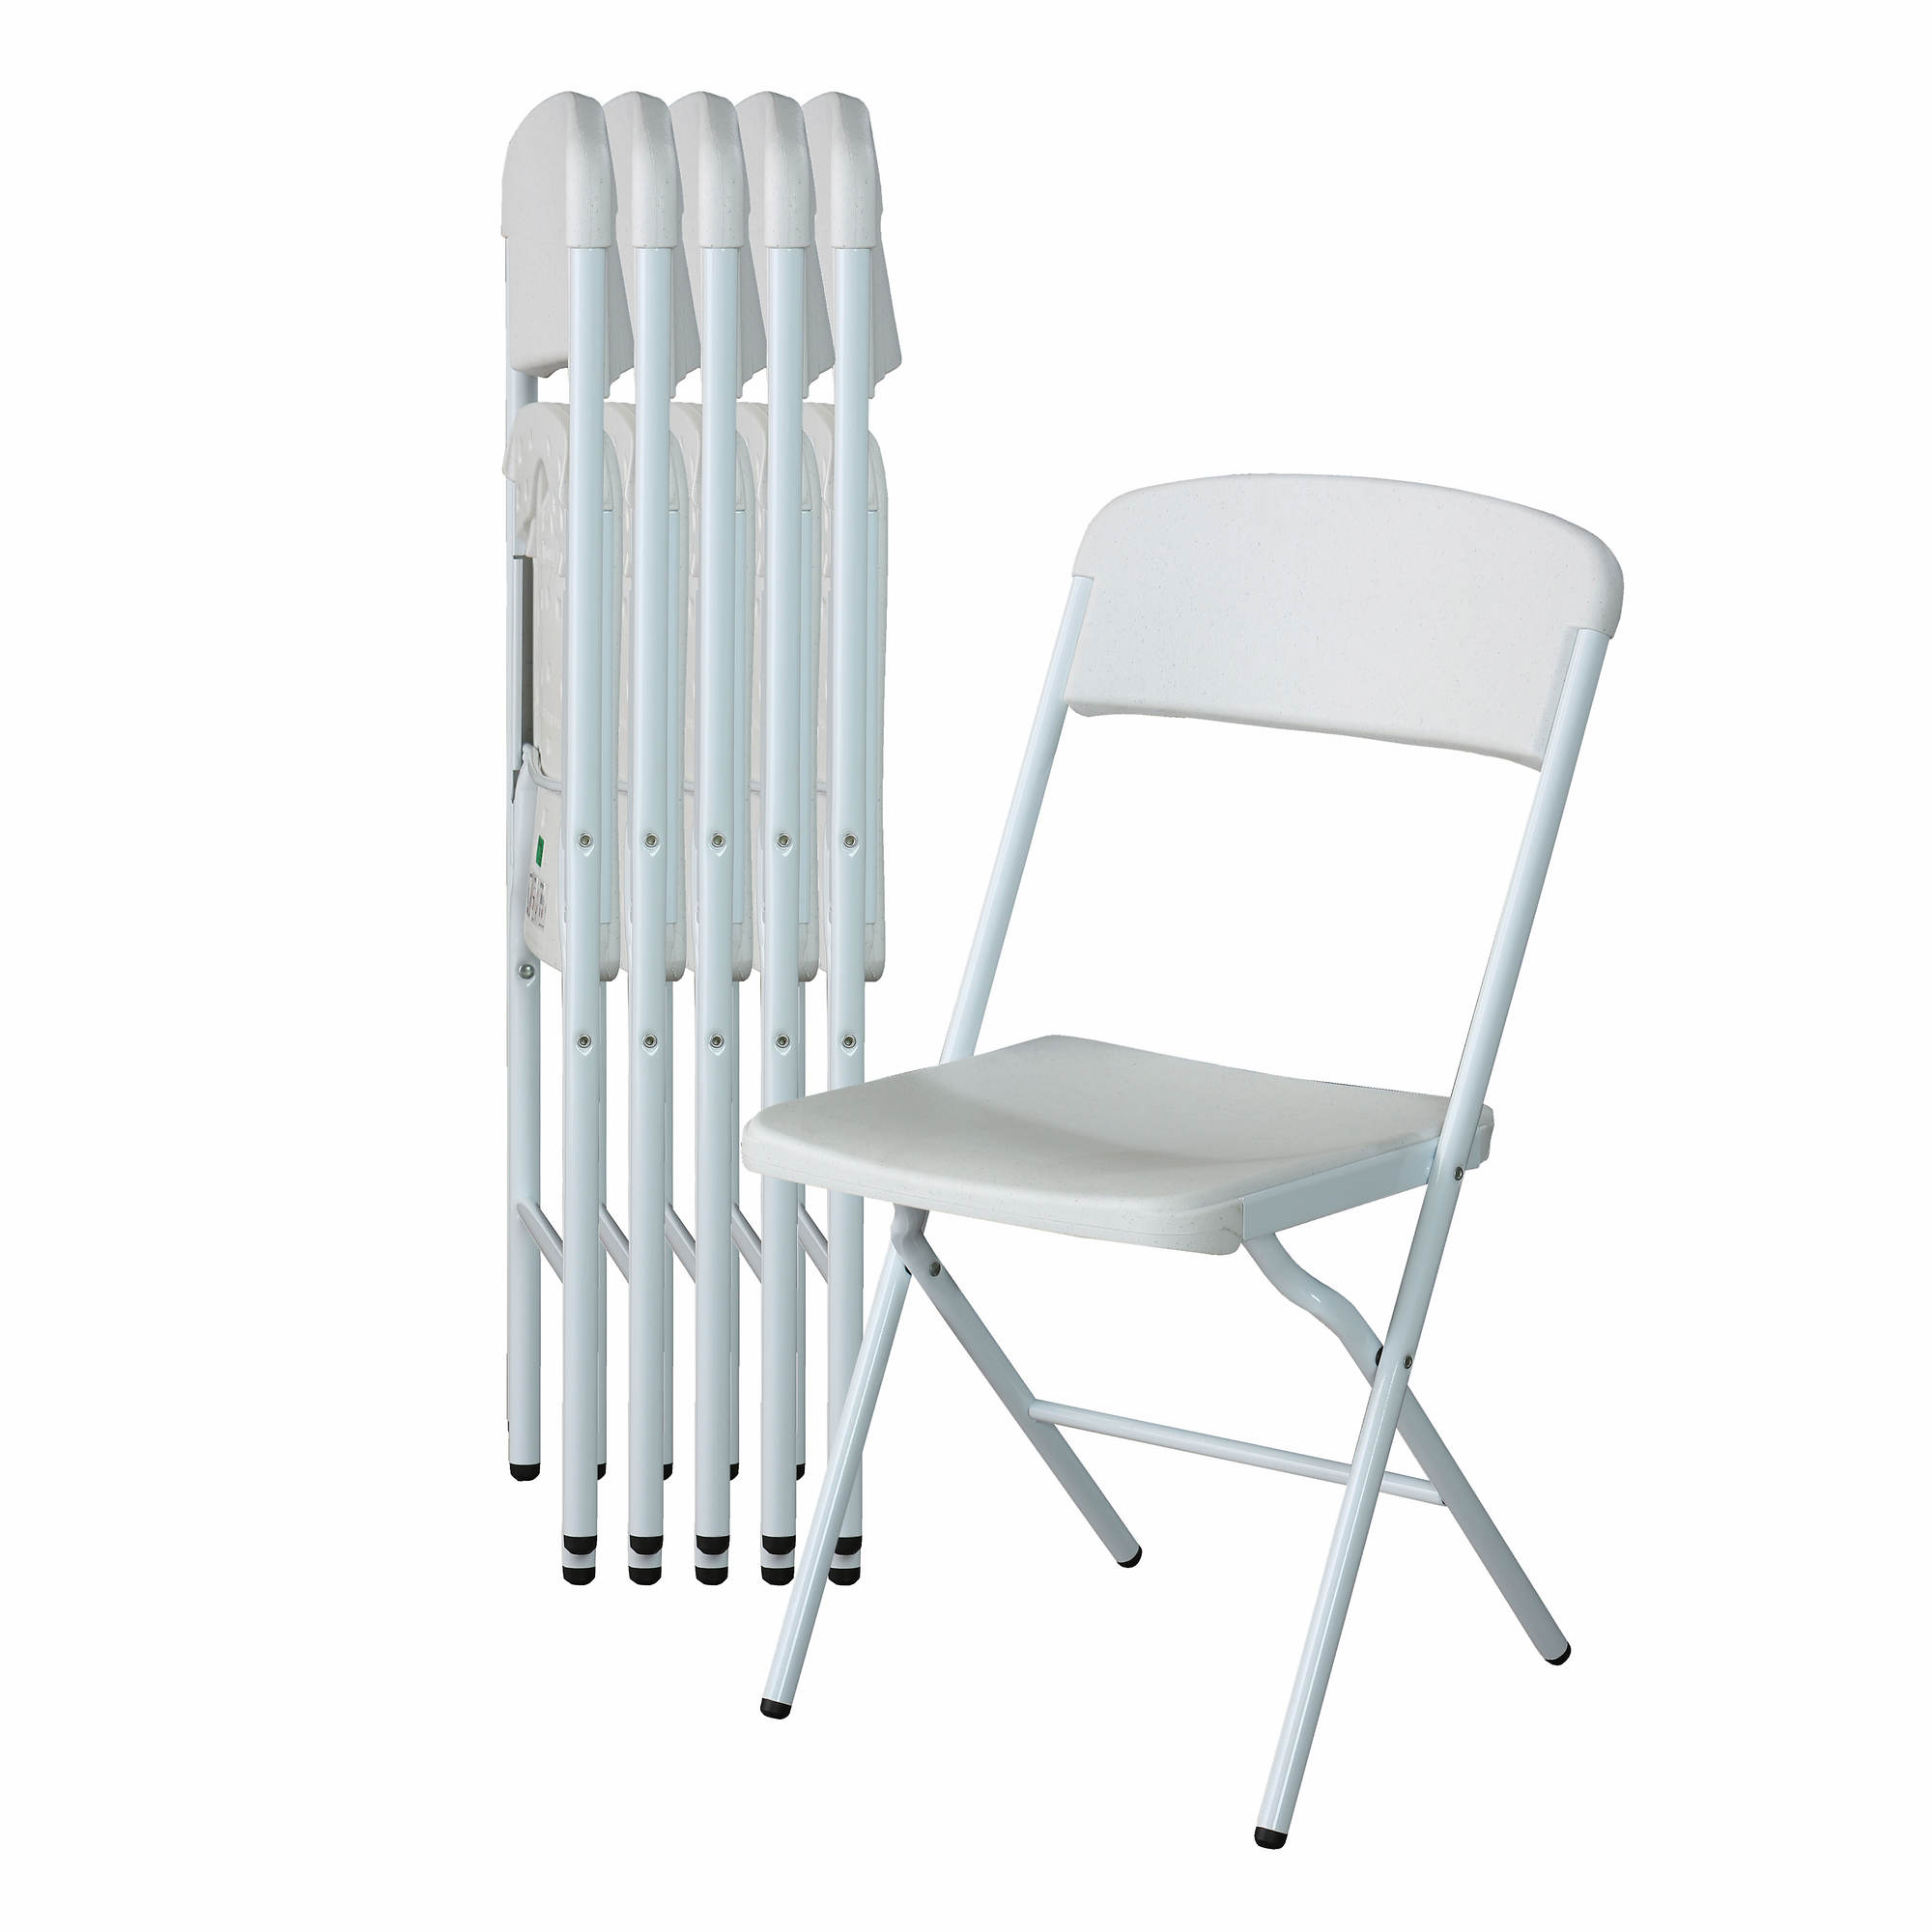 Lifetime Contemporary Folding Chair 6 Pk White Bj 39 S